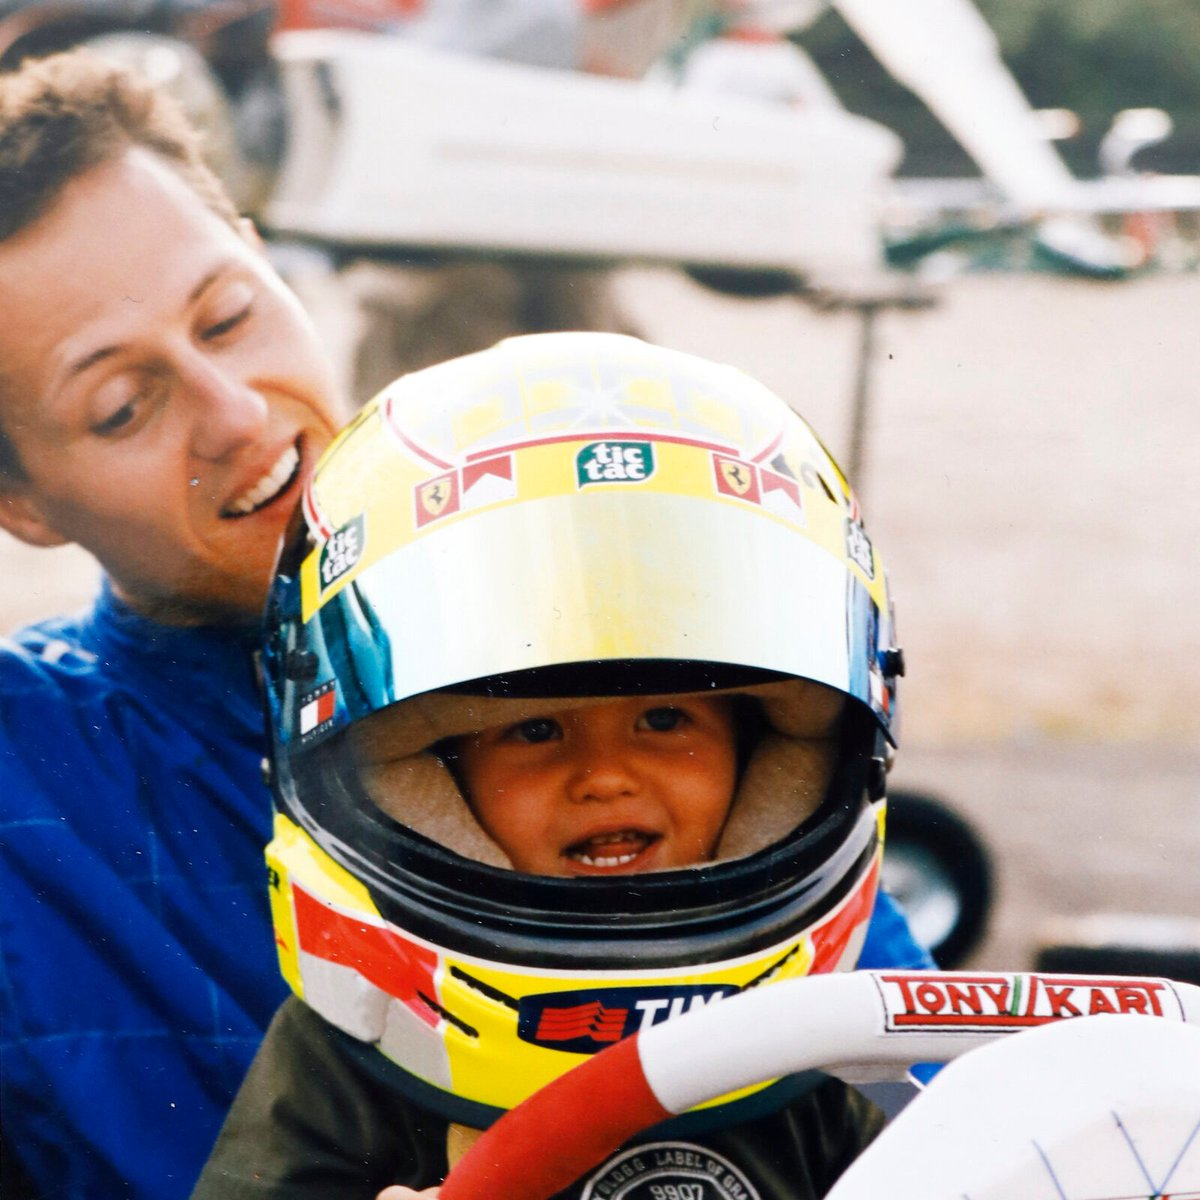 Chasing the dream like Dad all those years ago 👨👦  And next month in Germany, @SchumacherMick will bring the family name back to an F1 race weekend 🇩🇪  📸: @keepfighting   #F1 https://t.co/WLMM0hwYGu